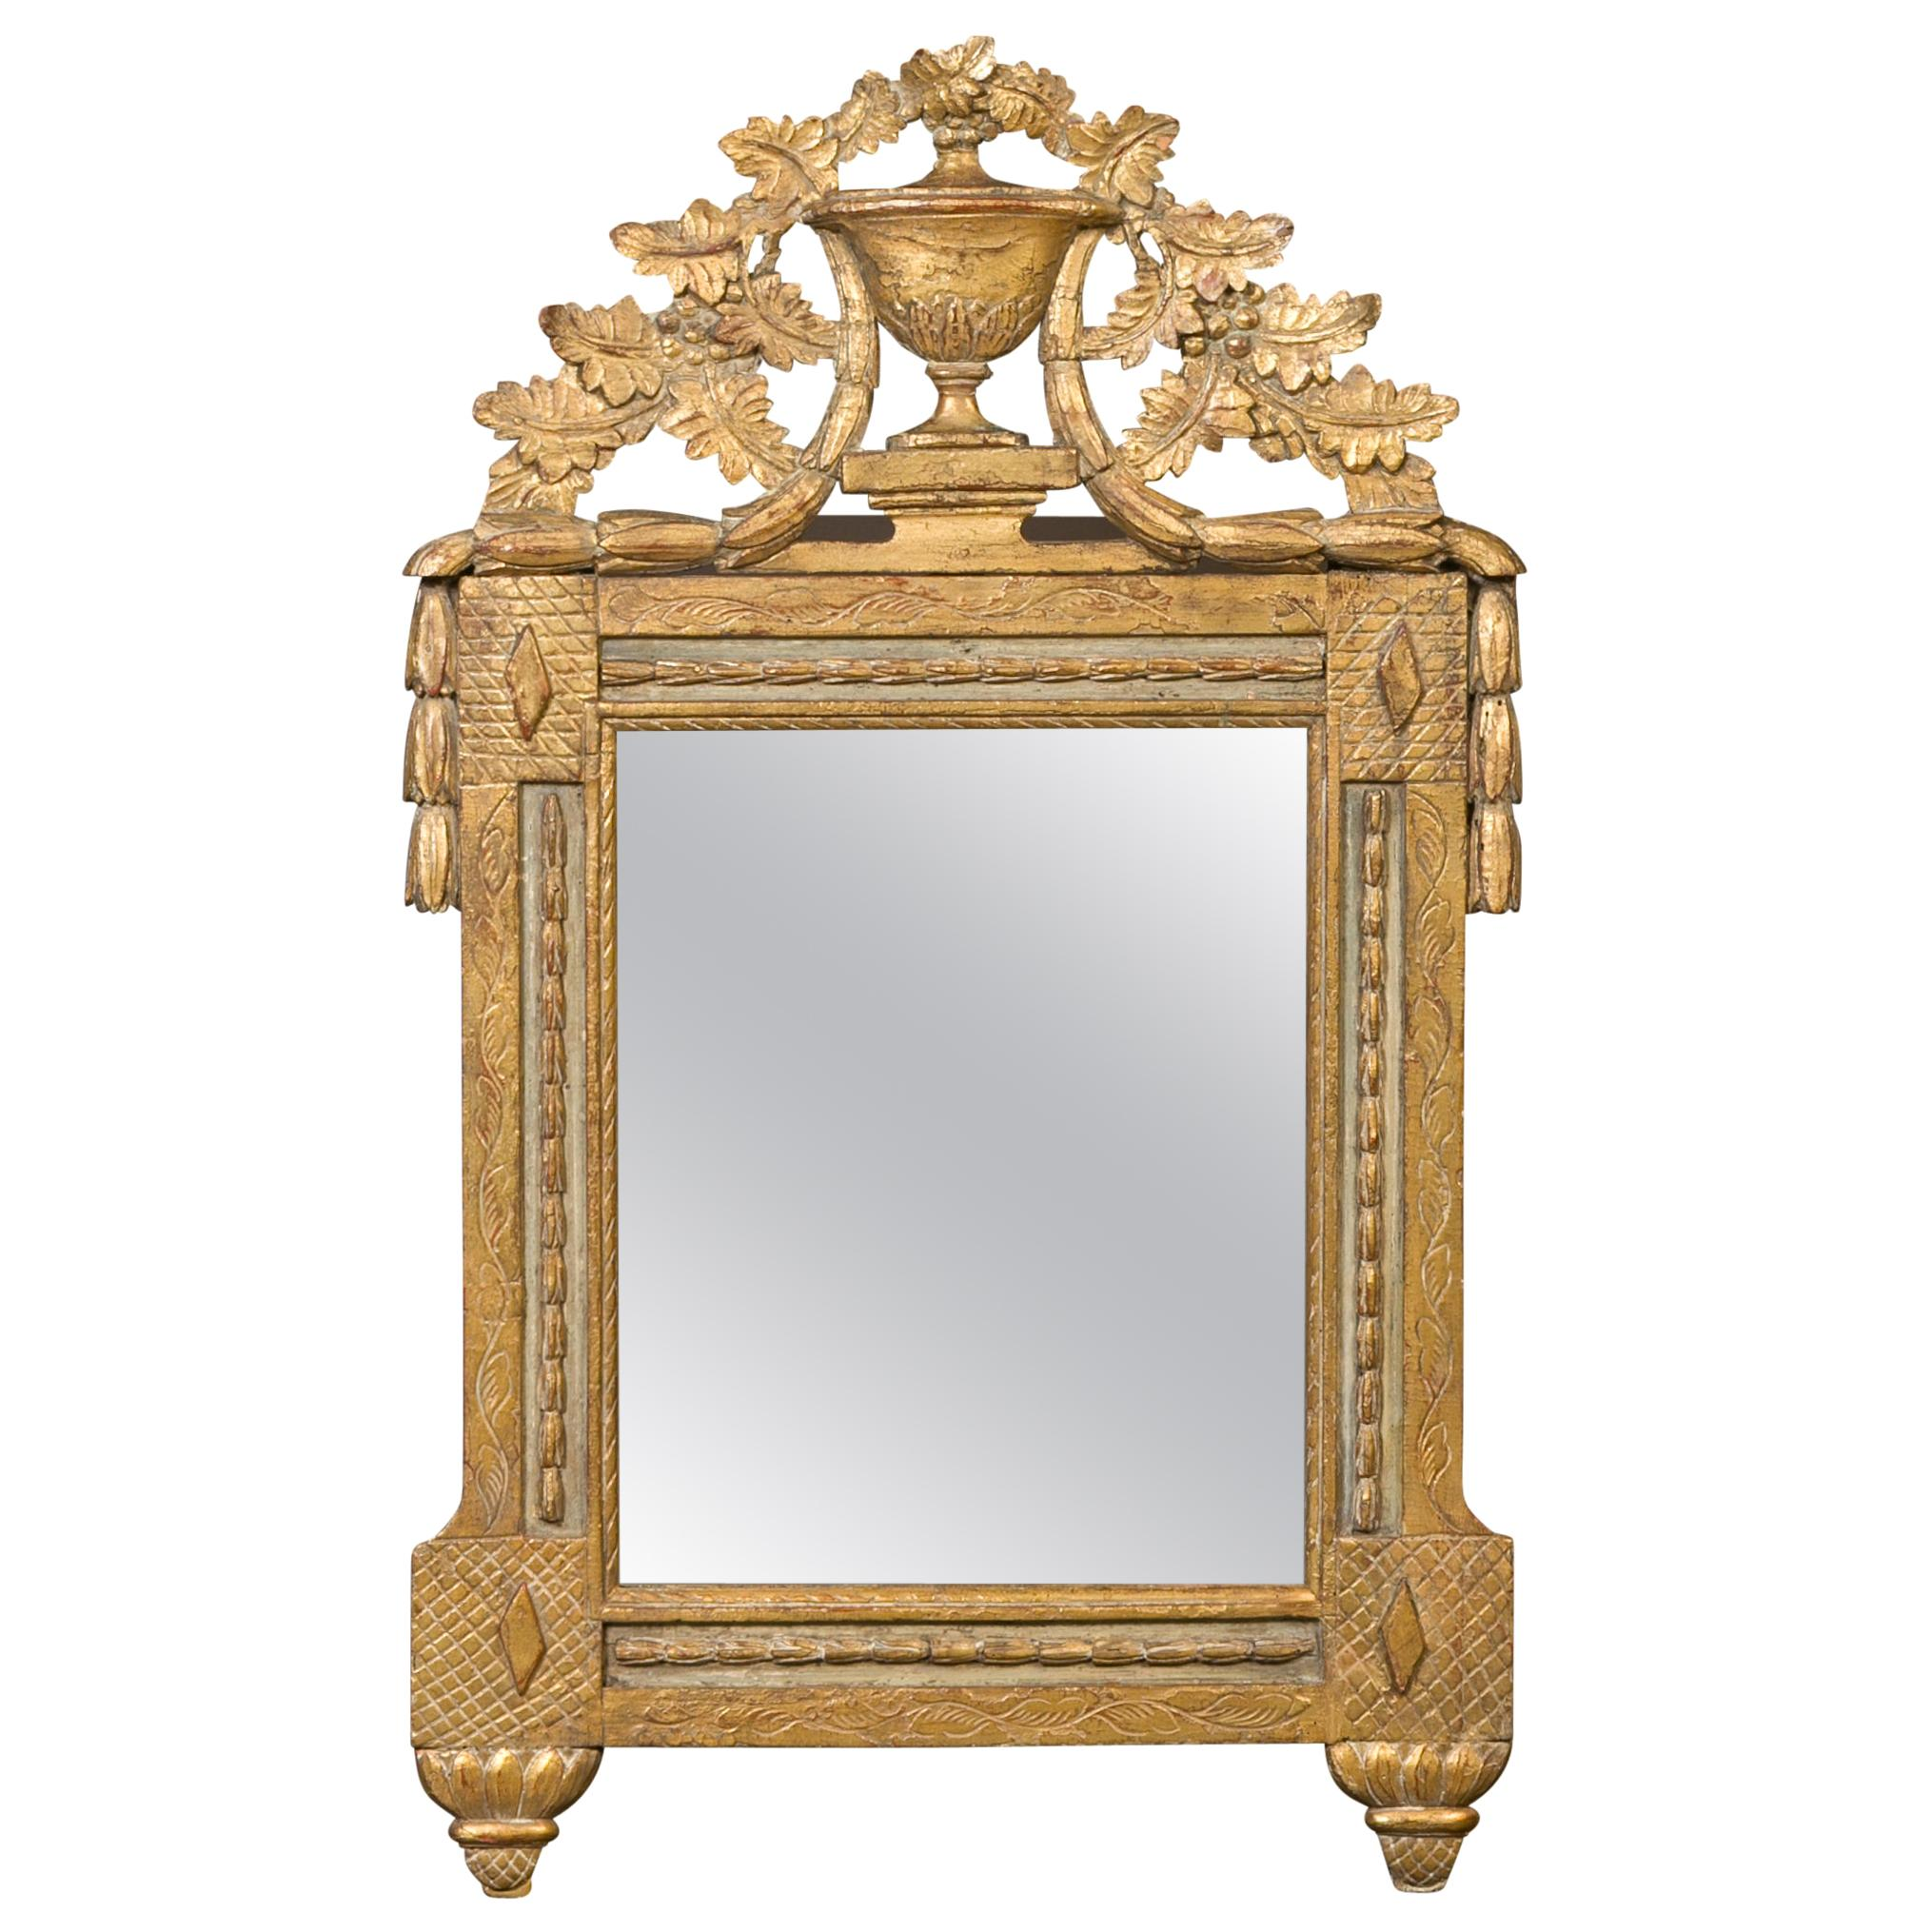 French 1800s Giltwood Crested Mirror with Carved Foliage, Urn and Garland